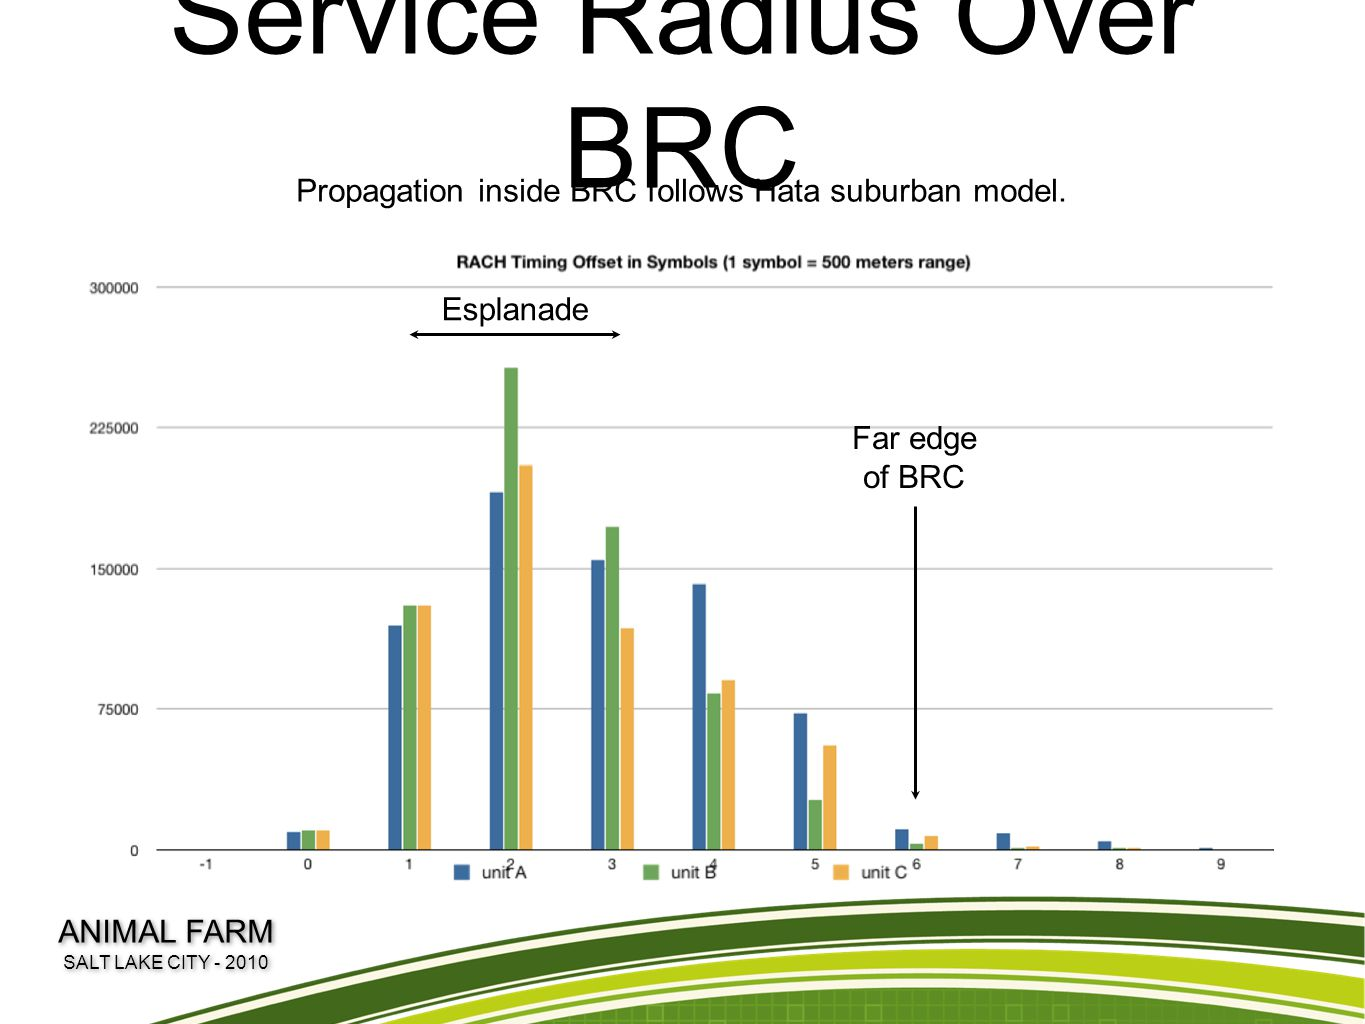 Service Radius Over BRC Esplanade Far edge of BRC Propagation inside BRC follows Hata suburban model. ANIMAL FARM SALT LAKE CITY - 2010 ANIMAL FARM SA